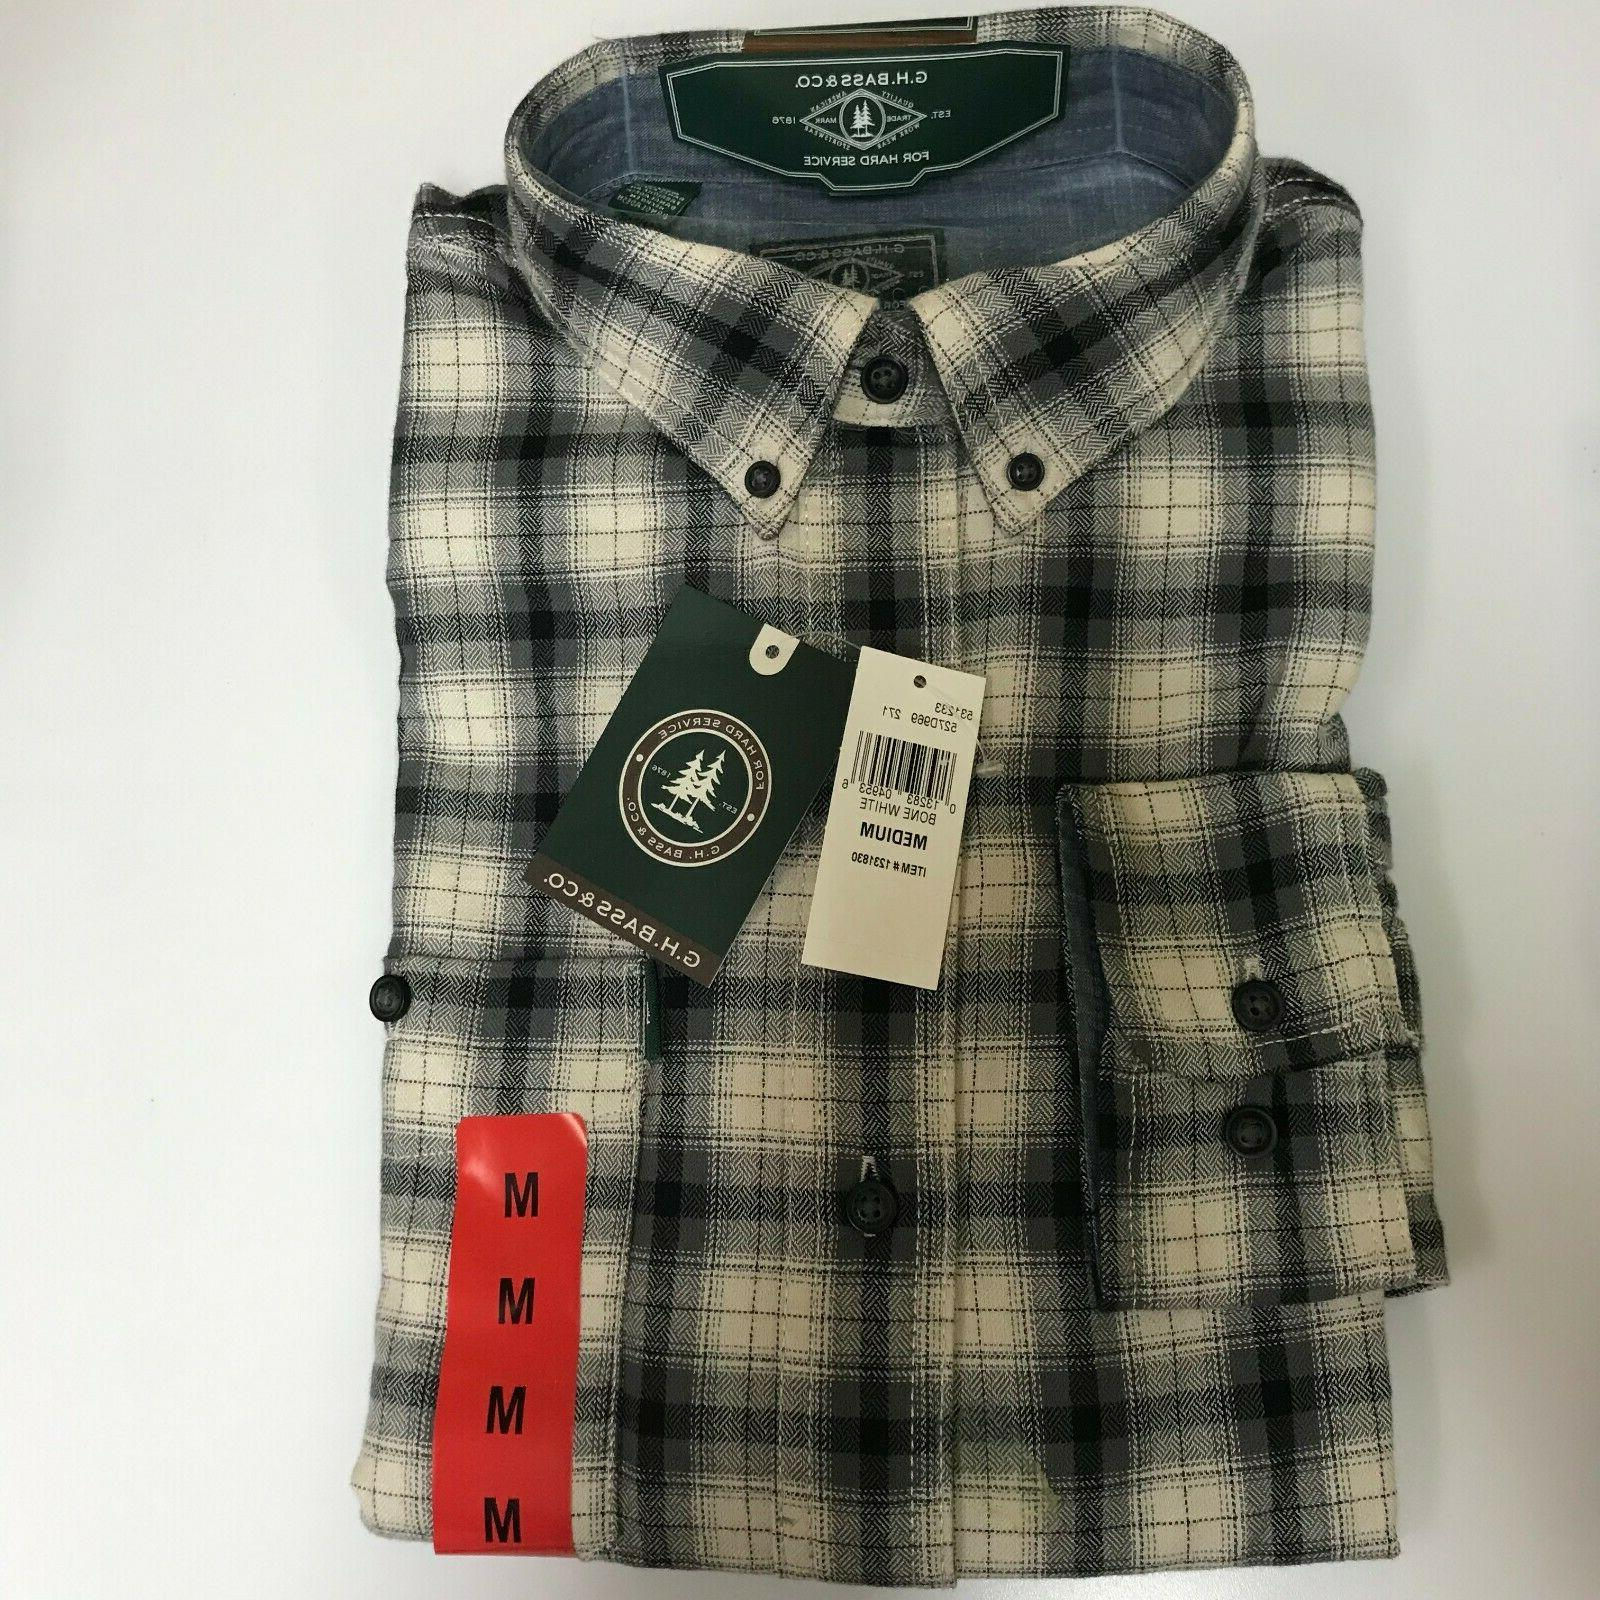 & CO. MEN'S FLANNEL Variety